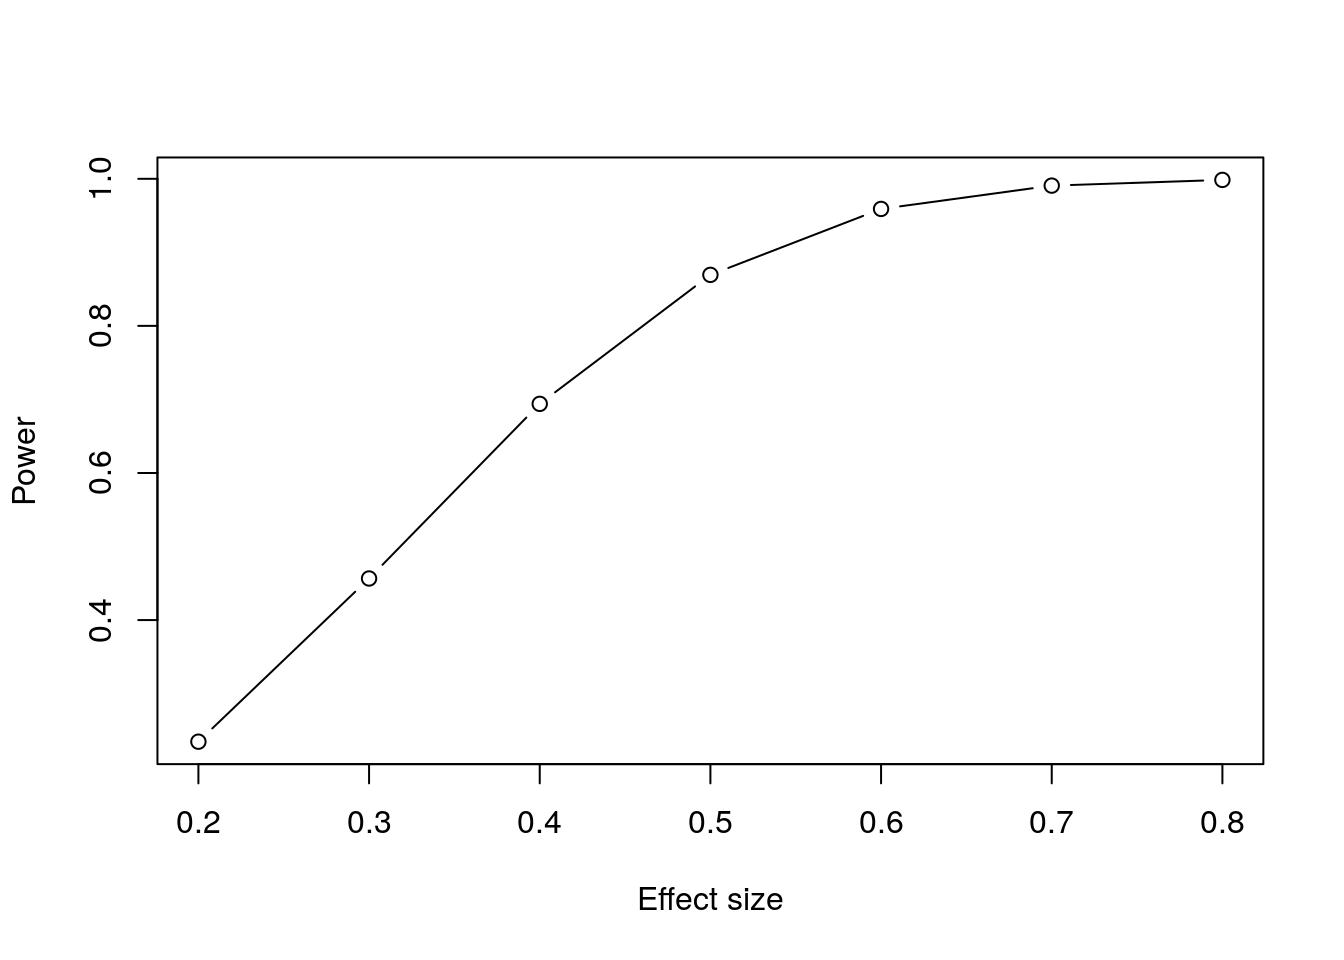 Plot of power against effect size for a paired t-test